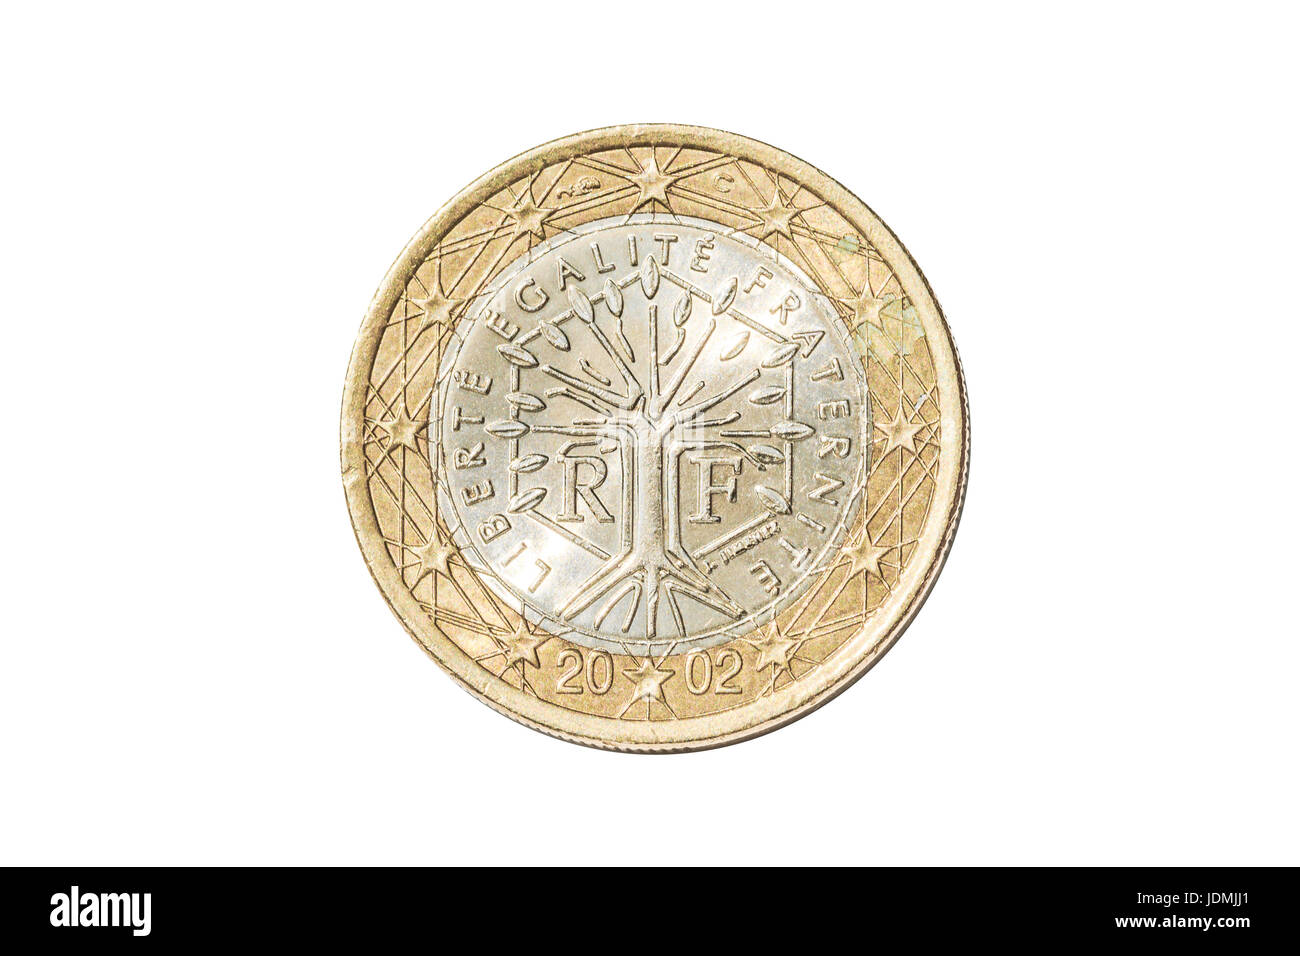 France one euro coin stock photo royalty free image 146127129 france one euro coin biocorpaavc